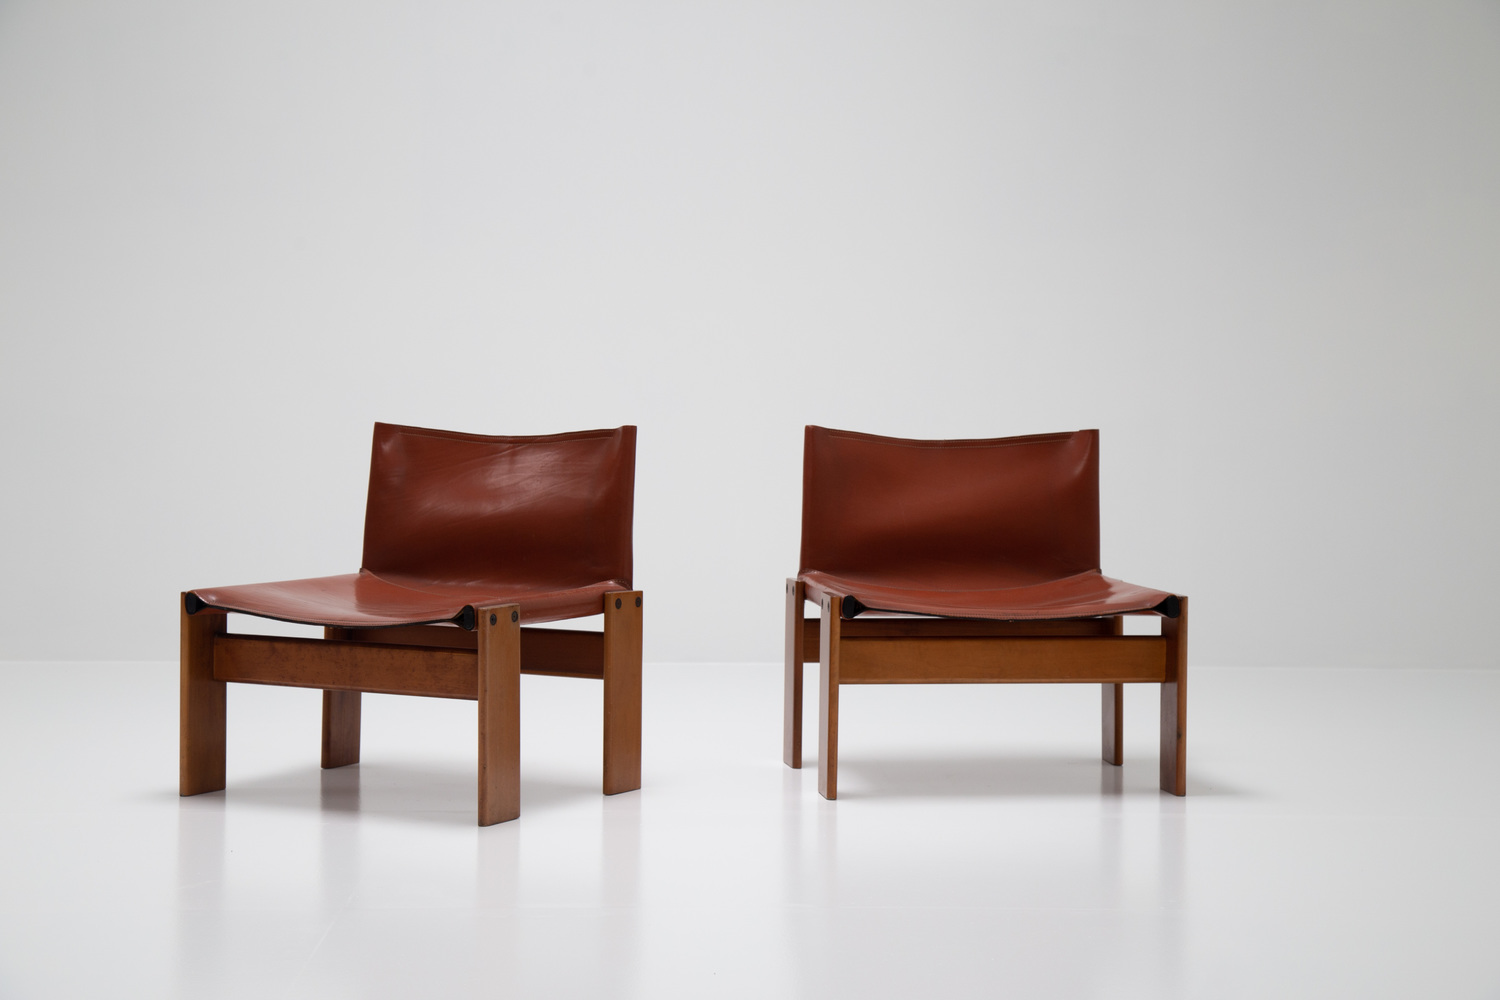 Pair of low 'Monk' chairs by Afra & Tobia Scarpa